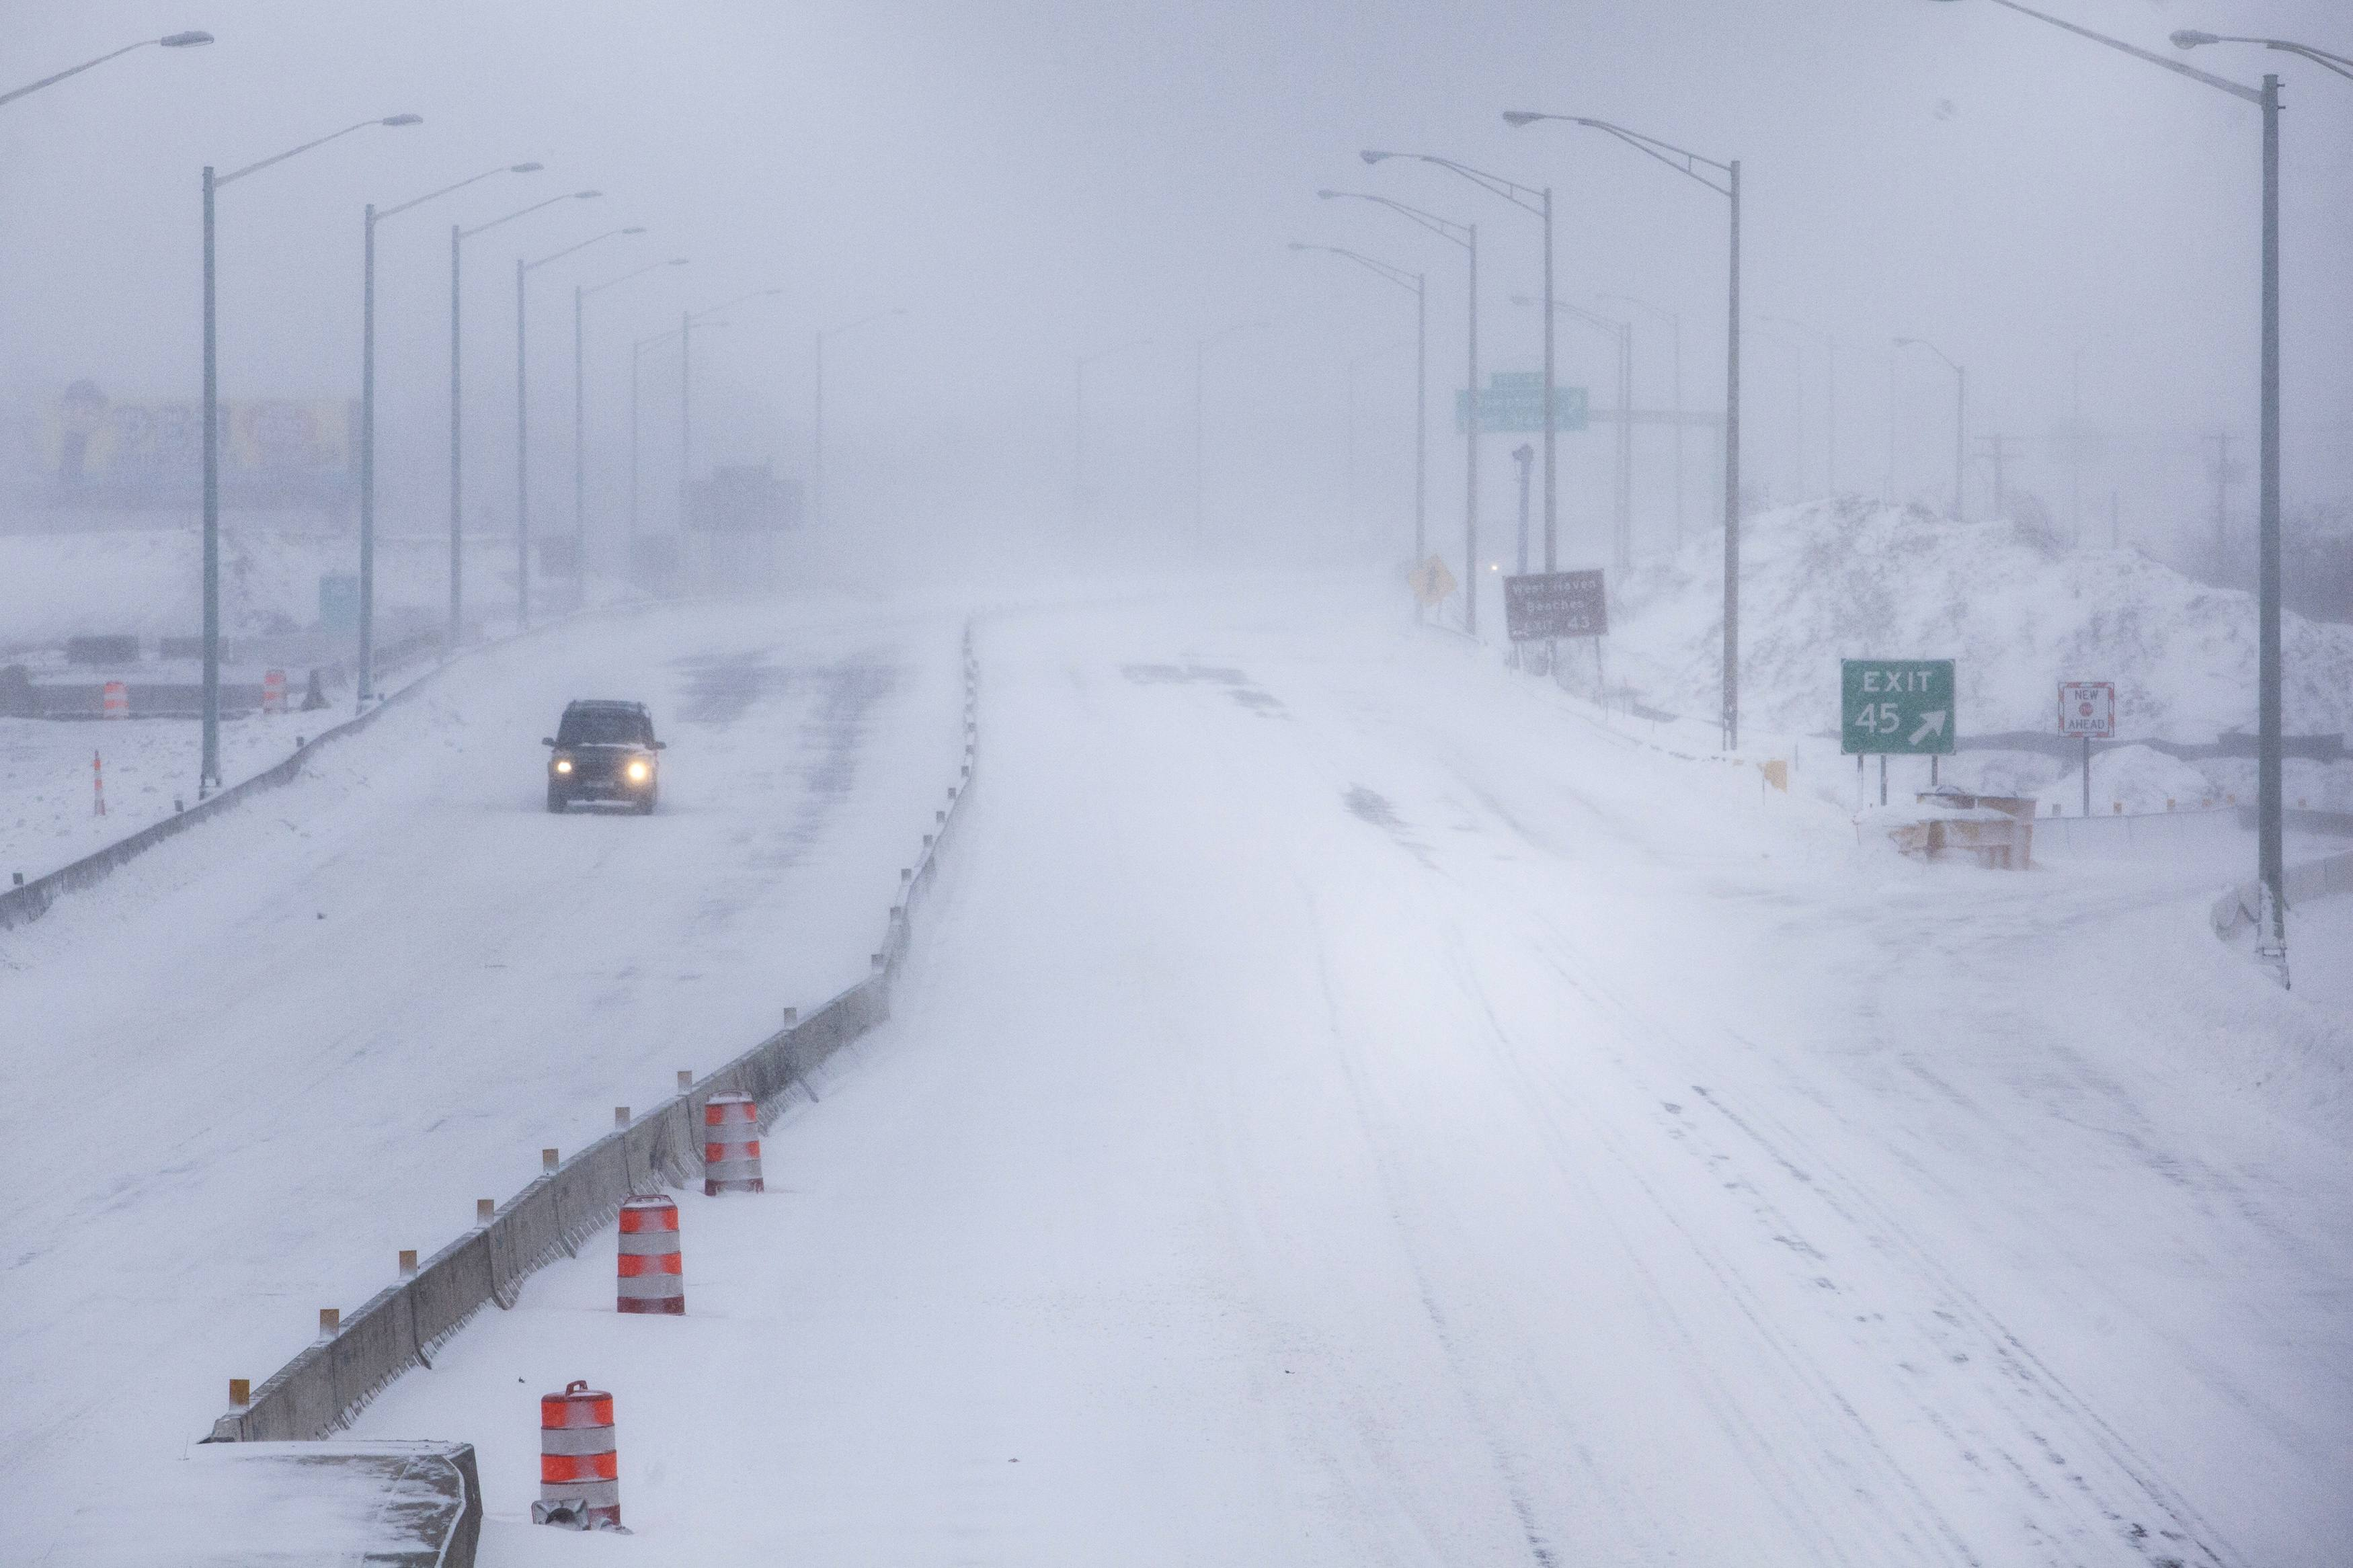 The Future of 'Epic Blizzards' in a Warming World